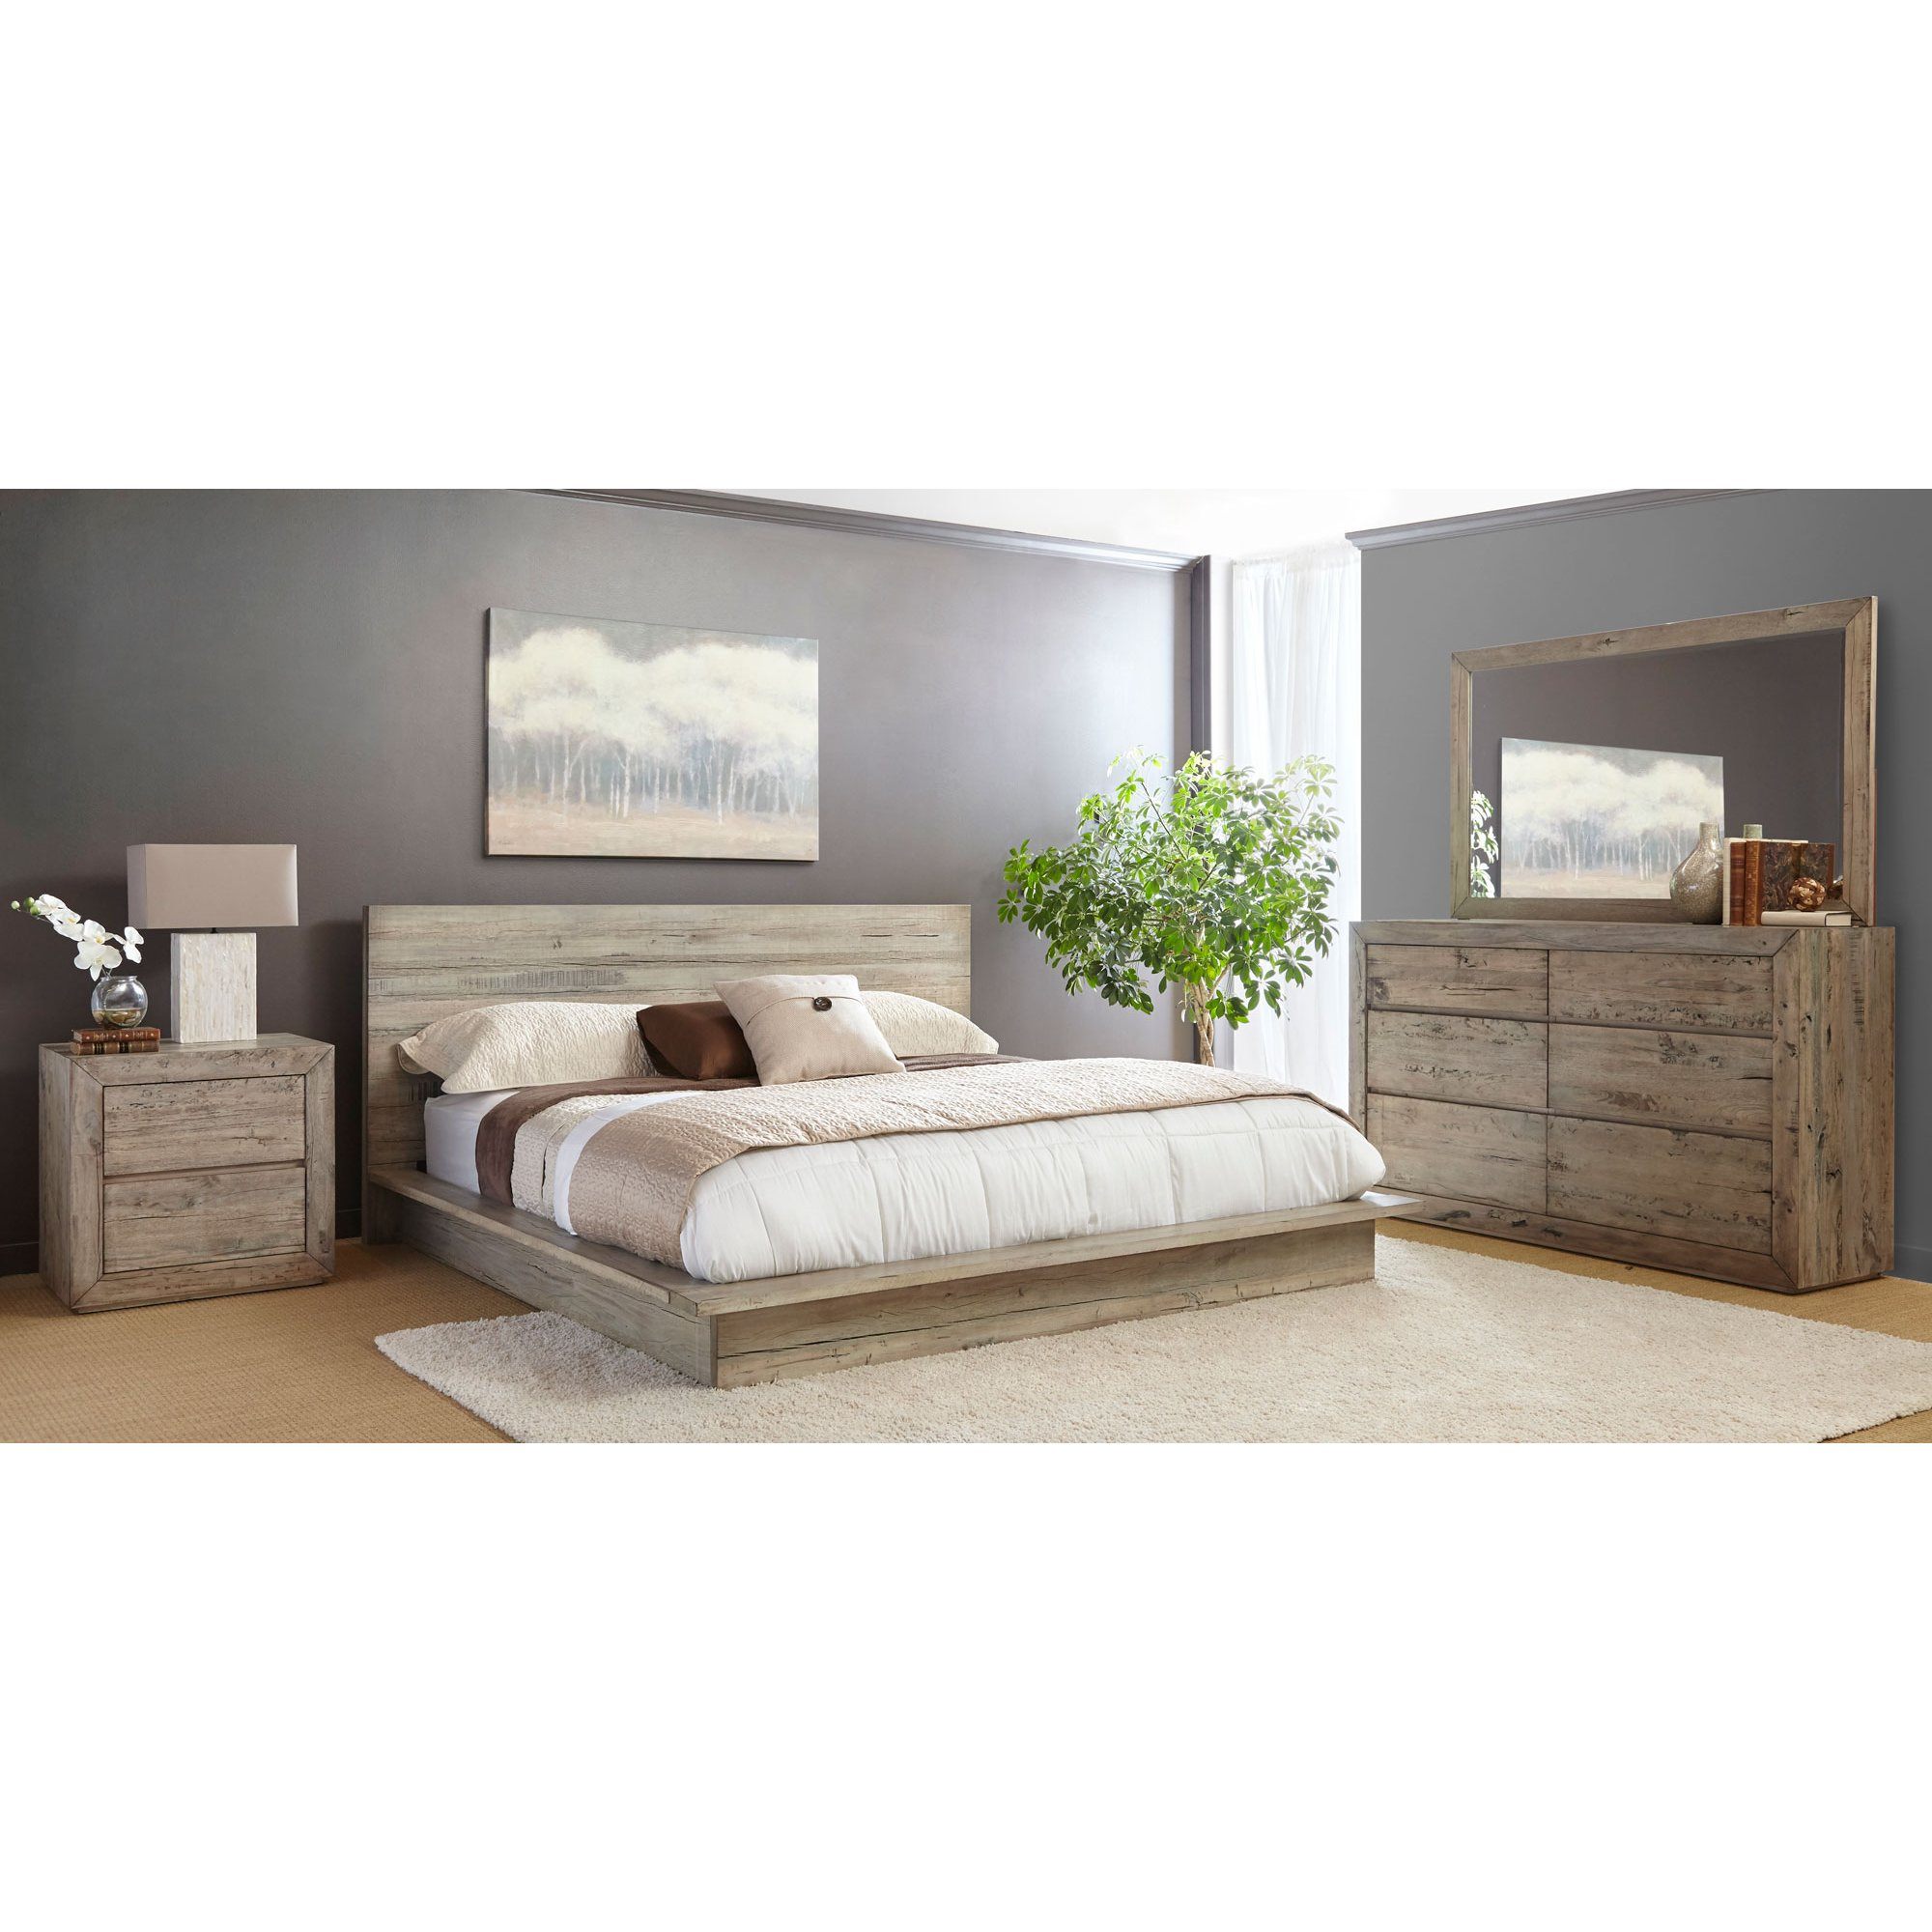 ... White Washed Modern Rustic 6 Piece California King Bed Bedroom Set    Renewal ...